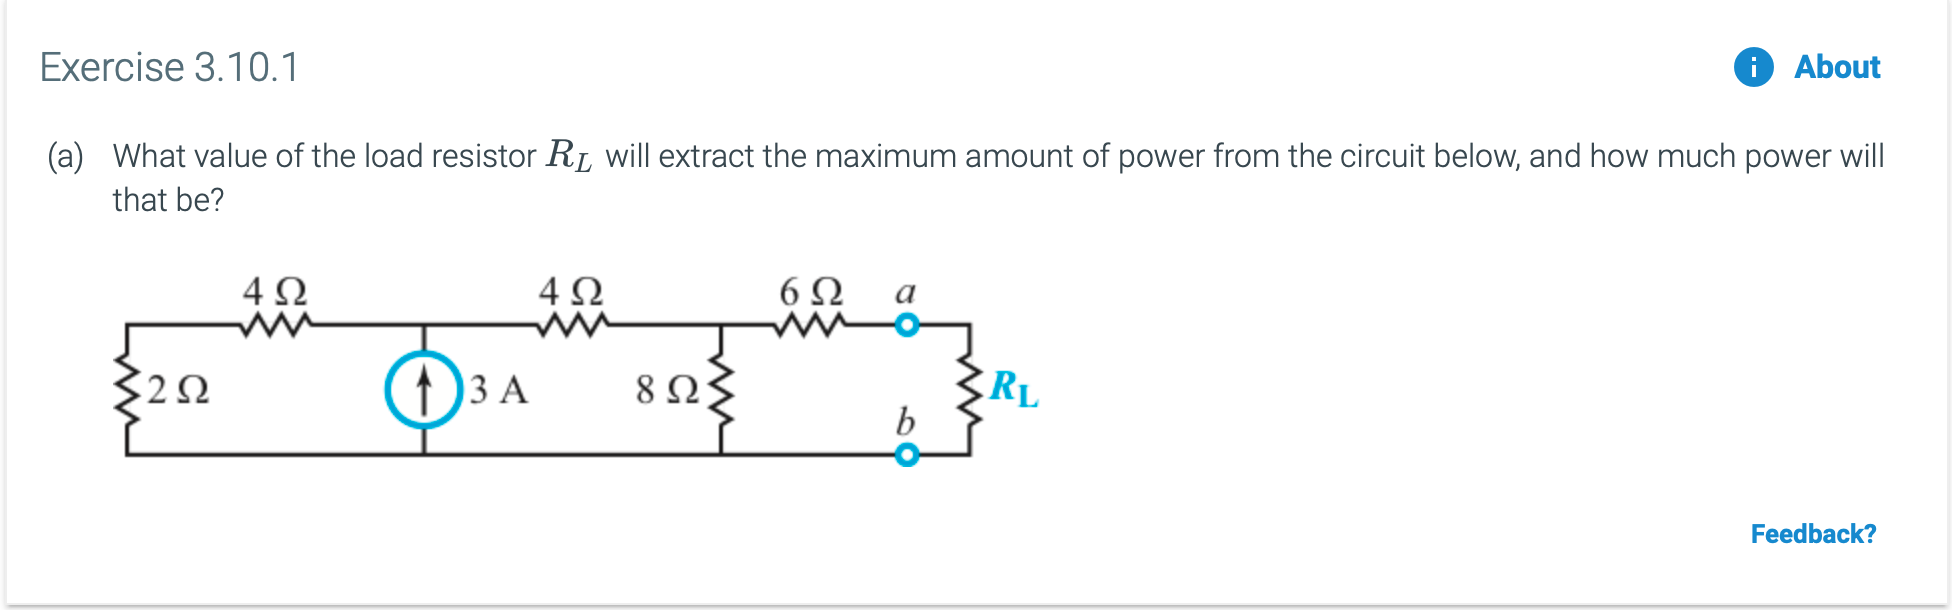 Exercise 3.10.1 About What value of the load resistor R (a) will extract the maximum amount of power from the circuit below, and how much power will that be? 6Ω ww- 4Ω 4Ω RL b 8 Ω ) 3 A Feedback? ww